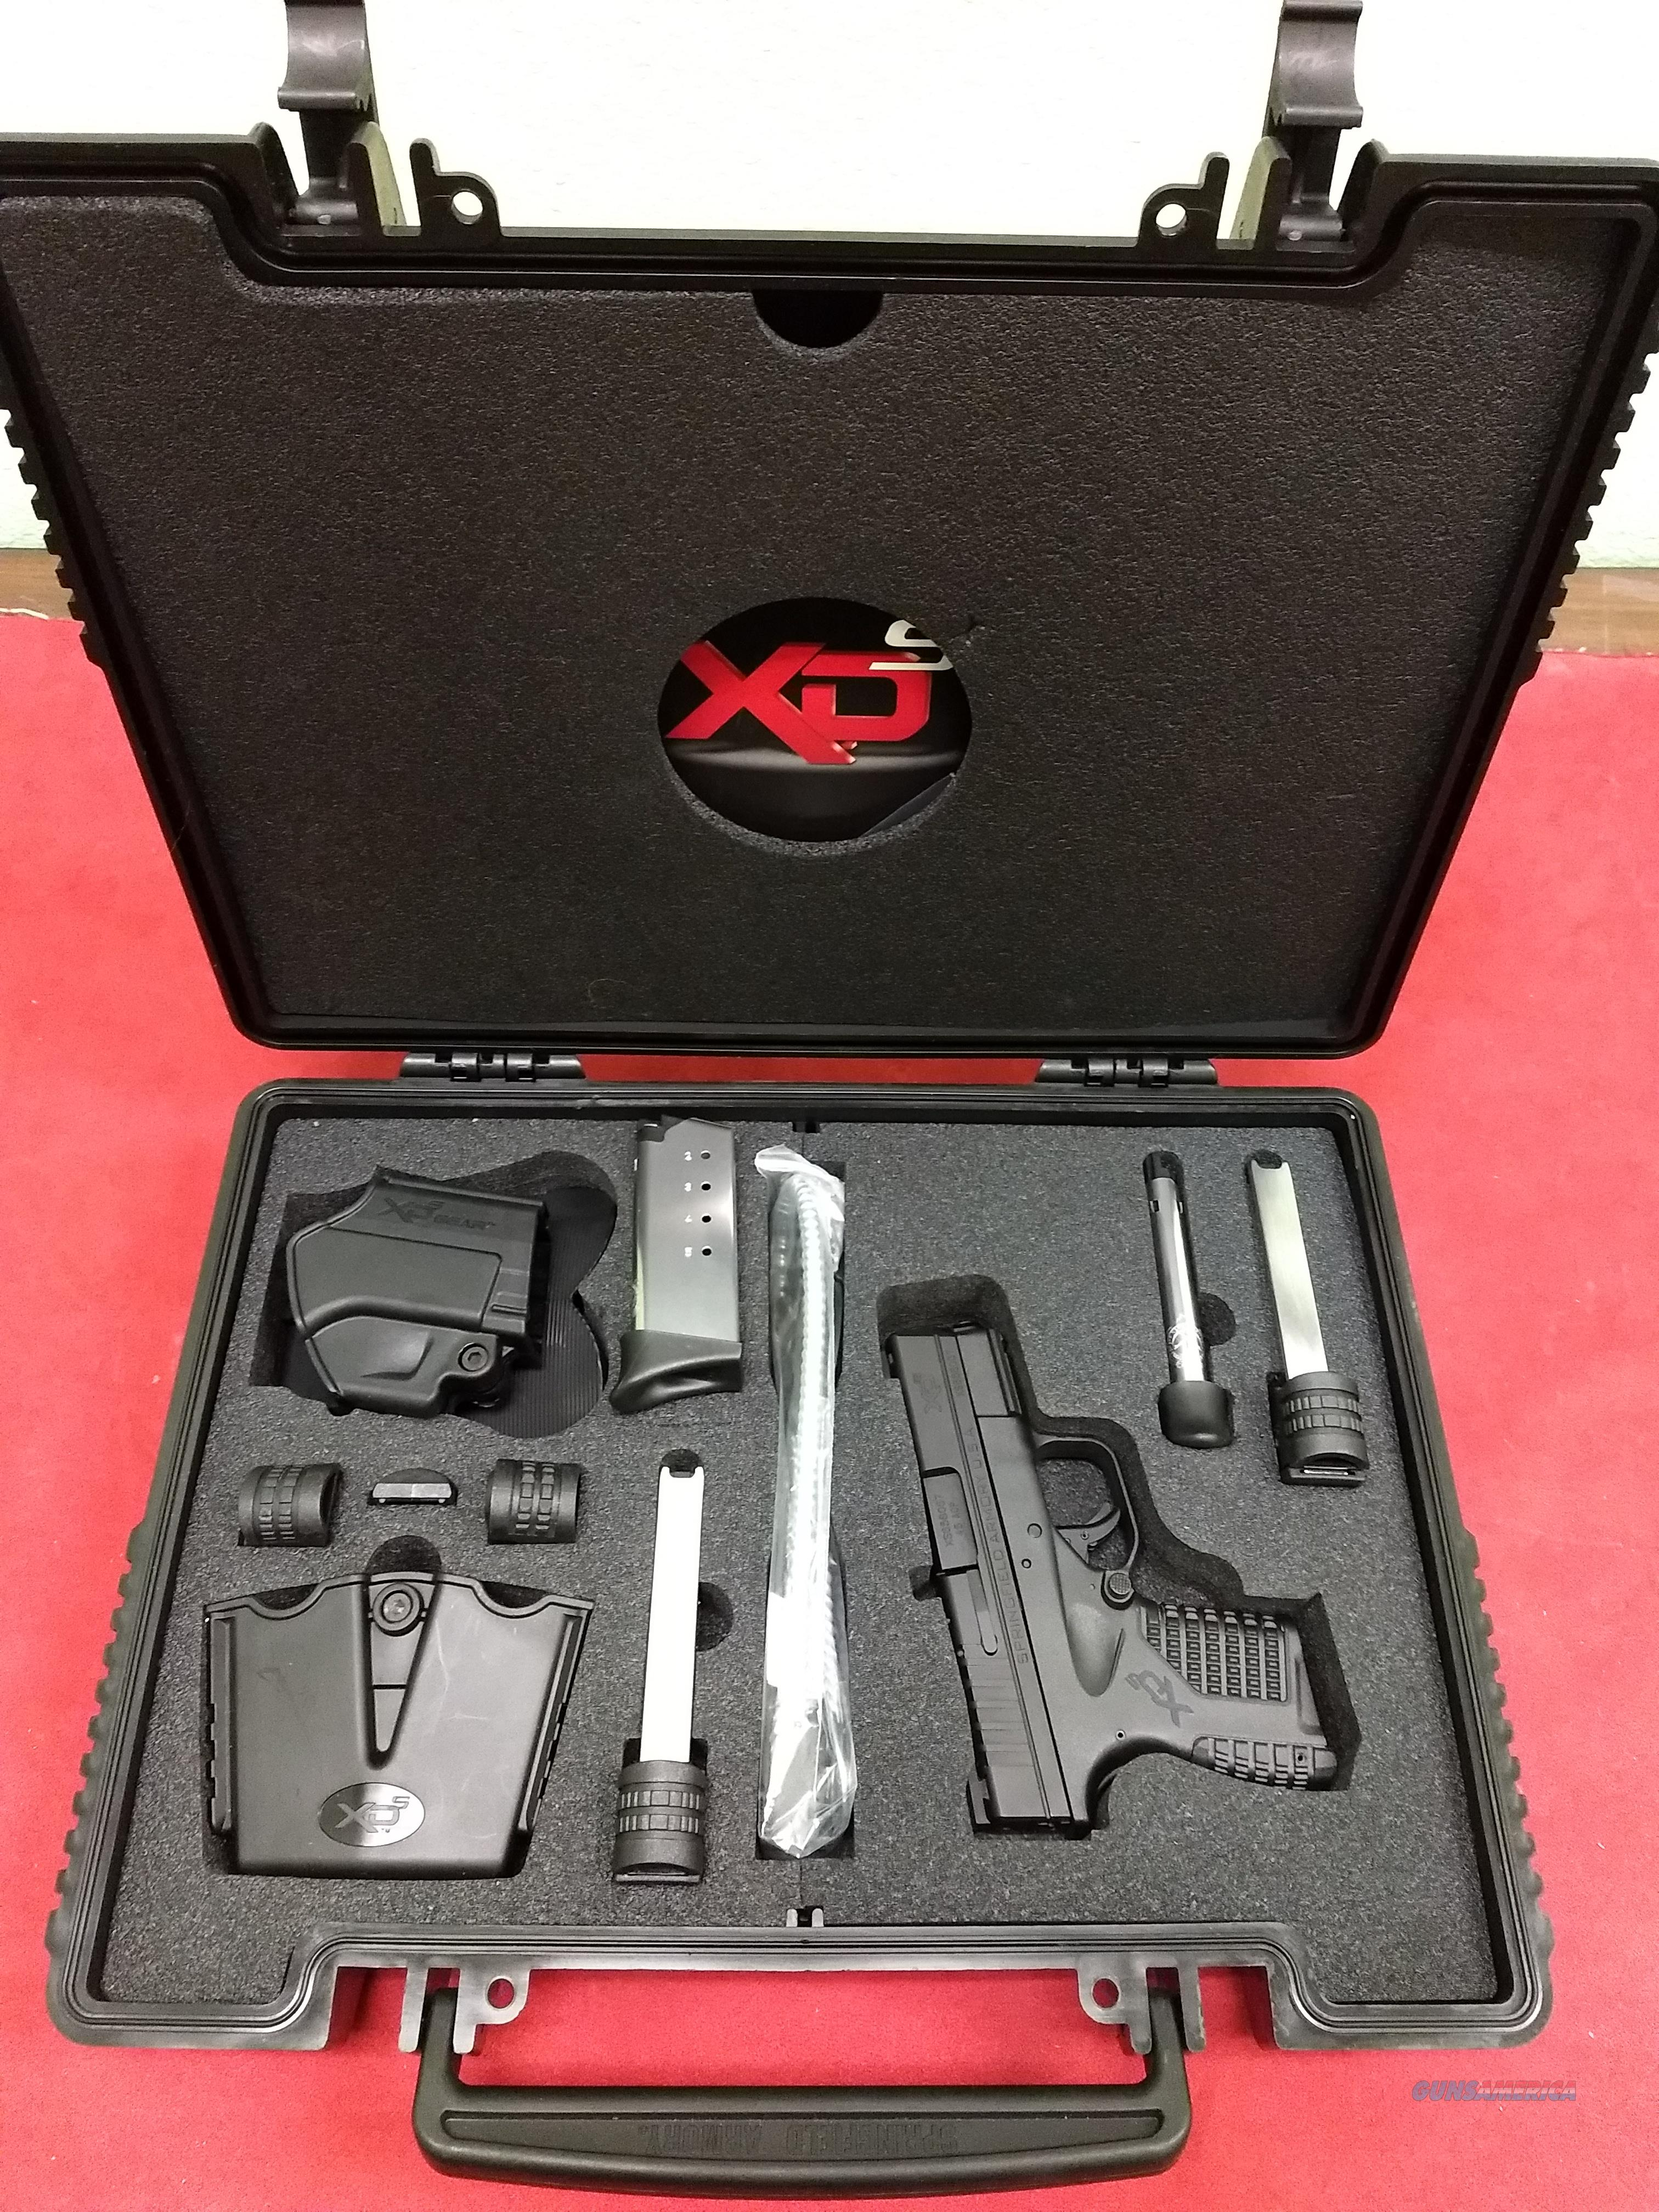 Springfield Armory XDS-45 w/ Gear Pack, .45 ACP, Never Fired!  Guns > Pistols > Springfield Armory Pistols > XD-S